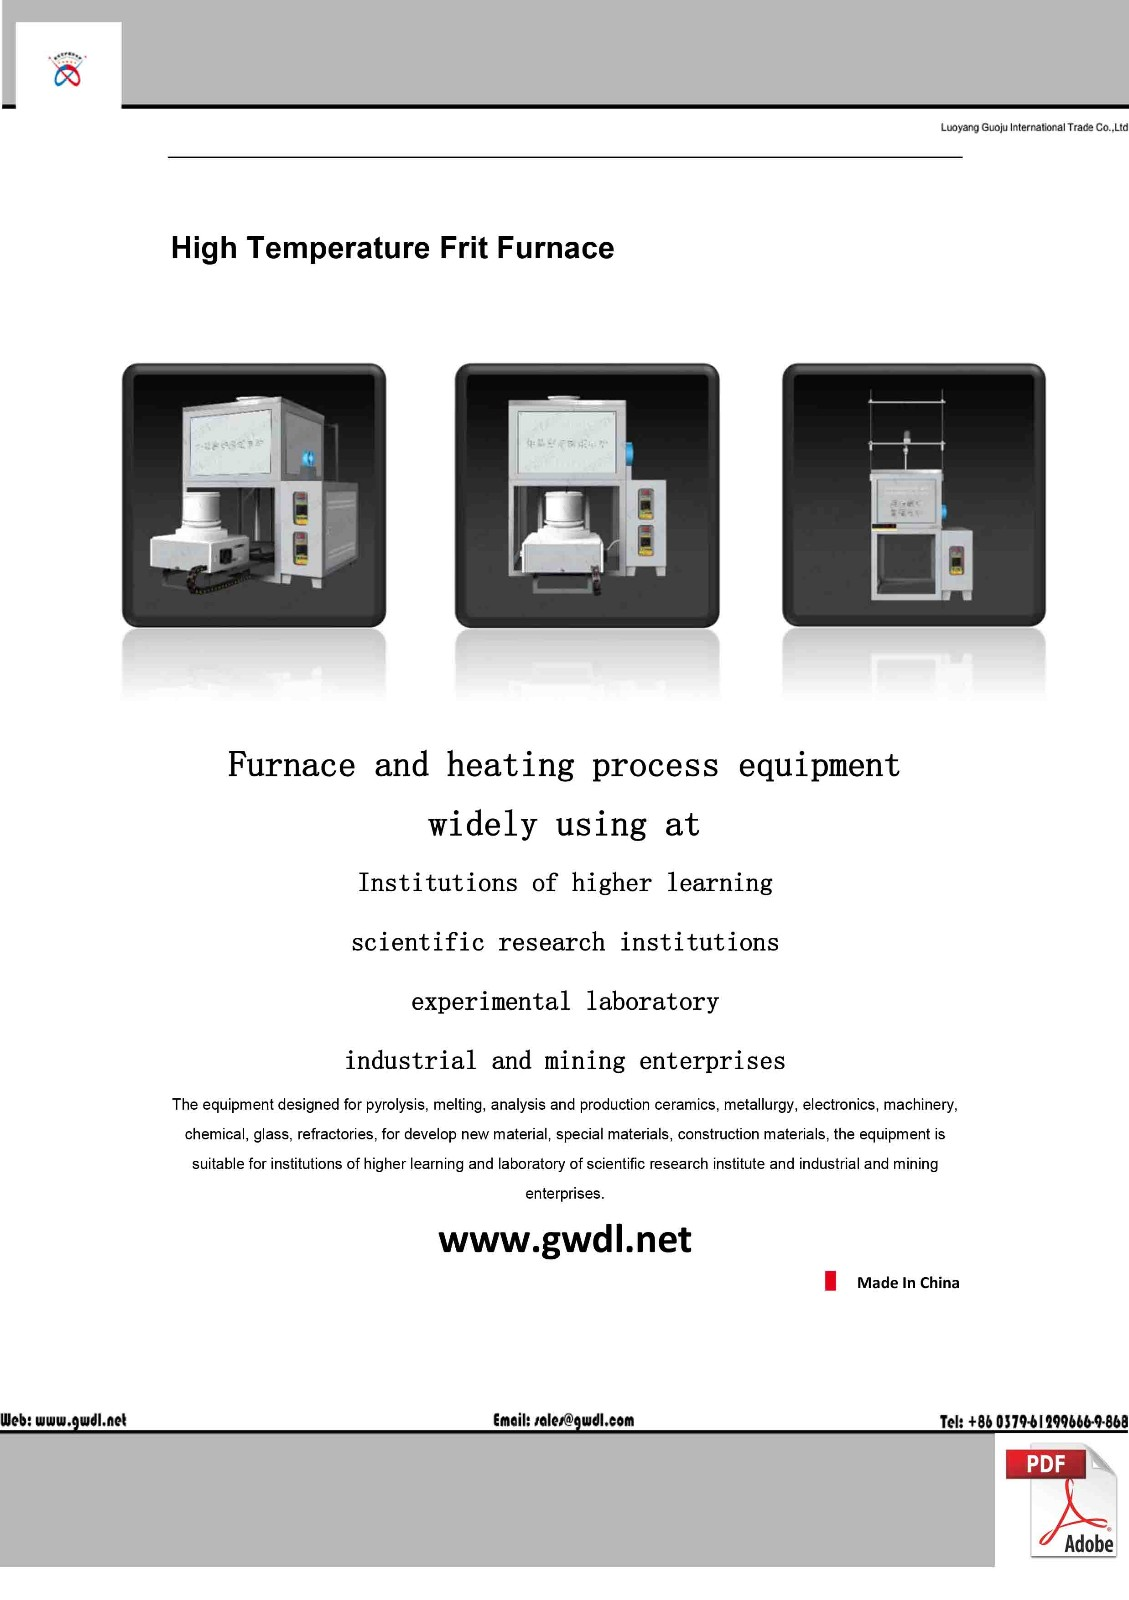 High Temperature Glass Melting Furnace With Agitation System (GWL-RJ)